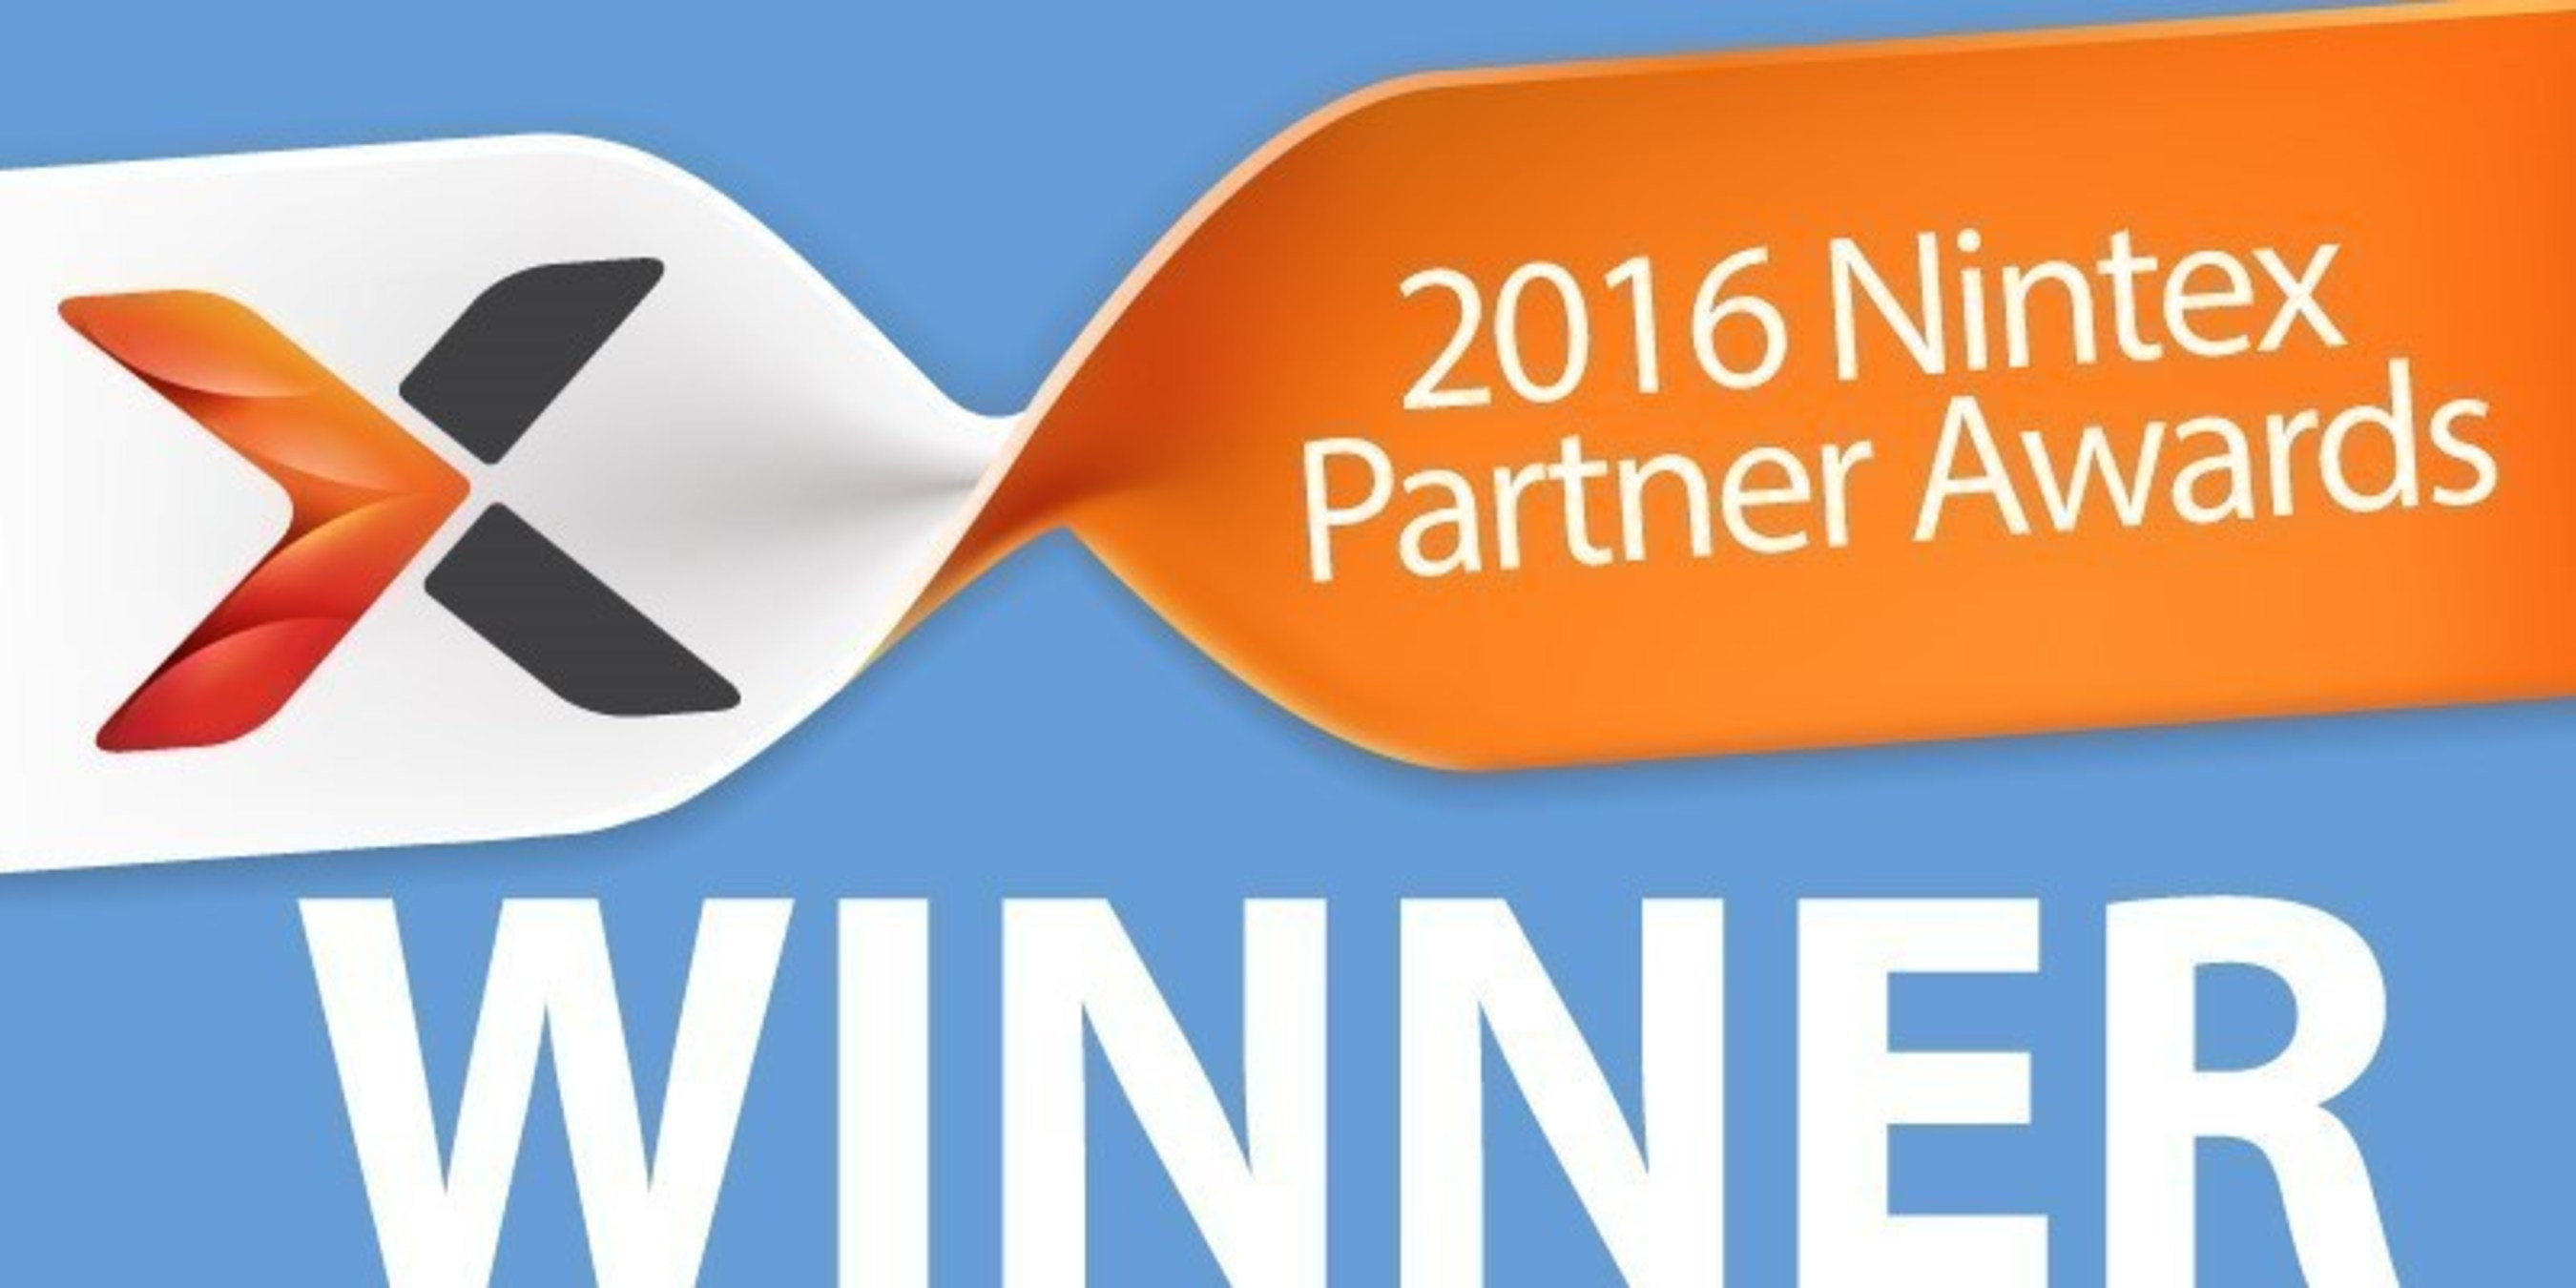 """In its fifth year, the Nintex Partner Awards recognize the valuable contributions channel partners--resellers, value added resellers (VARs), system integrators (SIs), independent software vendors (ISVs)--have made in helping organizations of all sizes, in every industry, automate workflows and the generation of documents to improve how business gets done. To learn more about successful Nintex partners, download the new e-book """"Partner with Nintex: The path to profitability"""" at http://www.nintex.com/Partner-e-Book."""